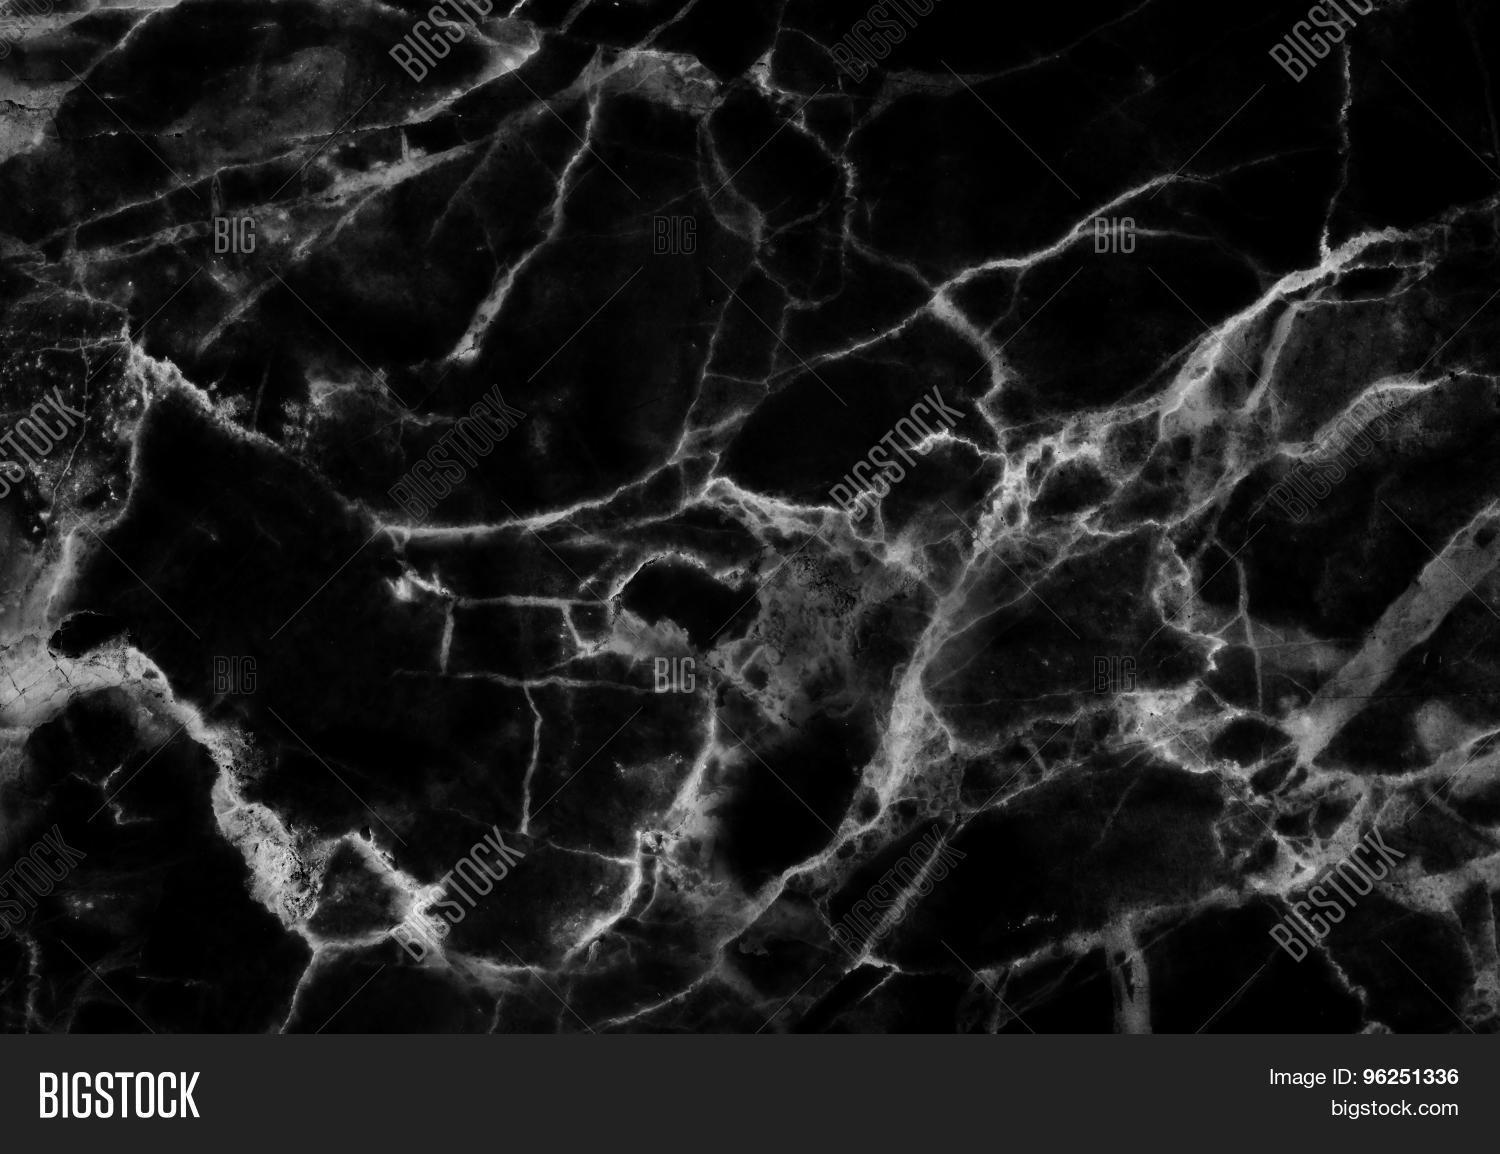 Black Marble Texture Image Photo Free Trial Bigstock